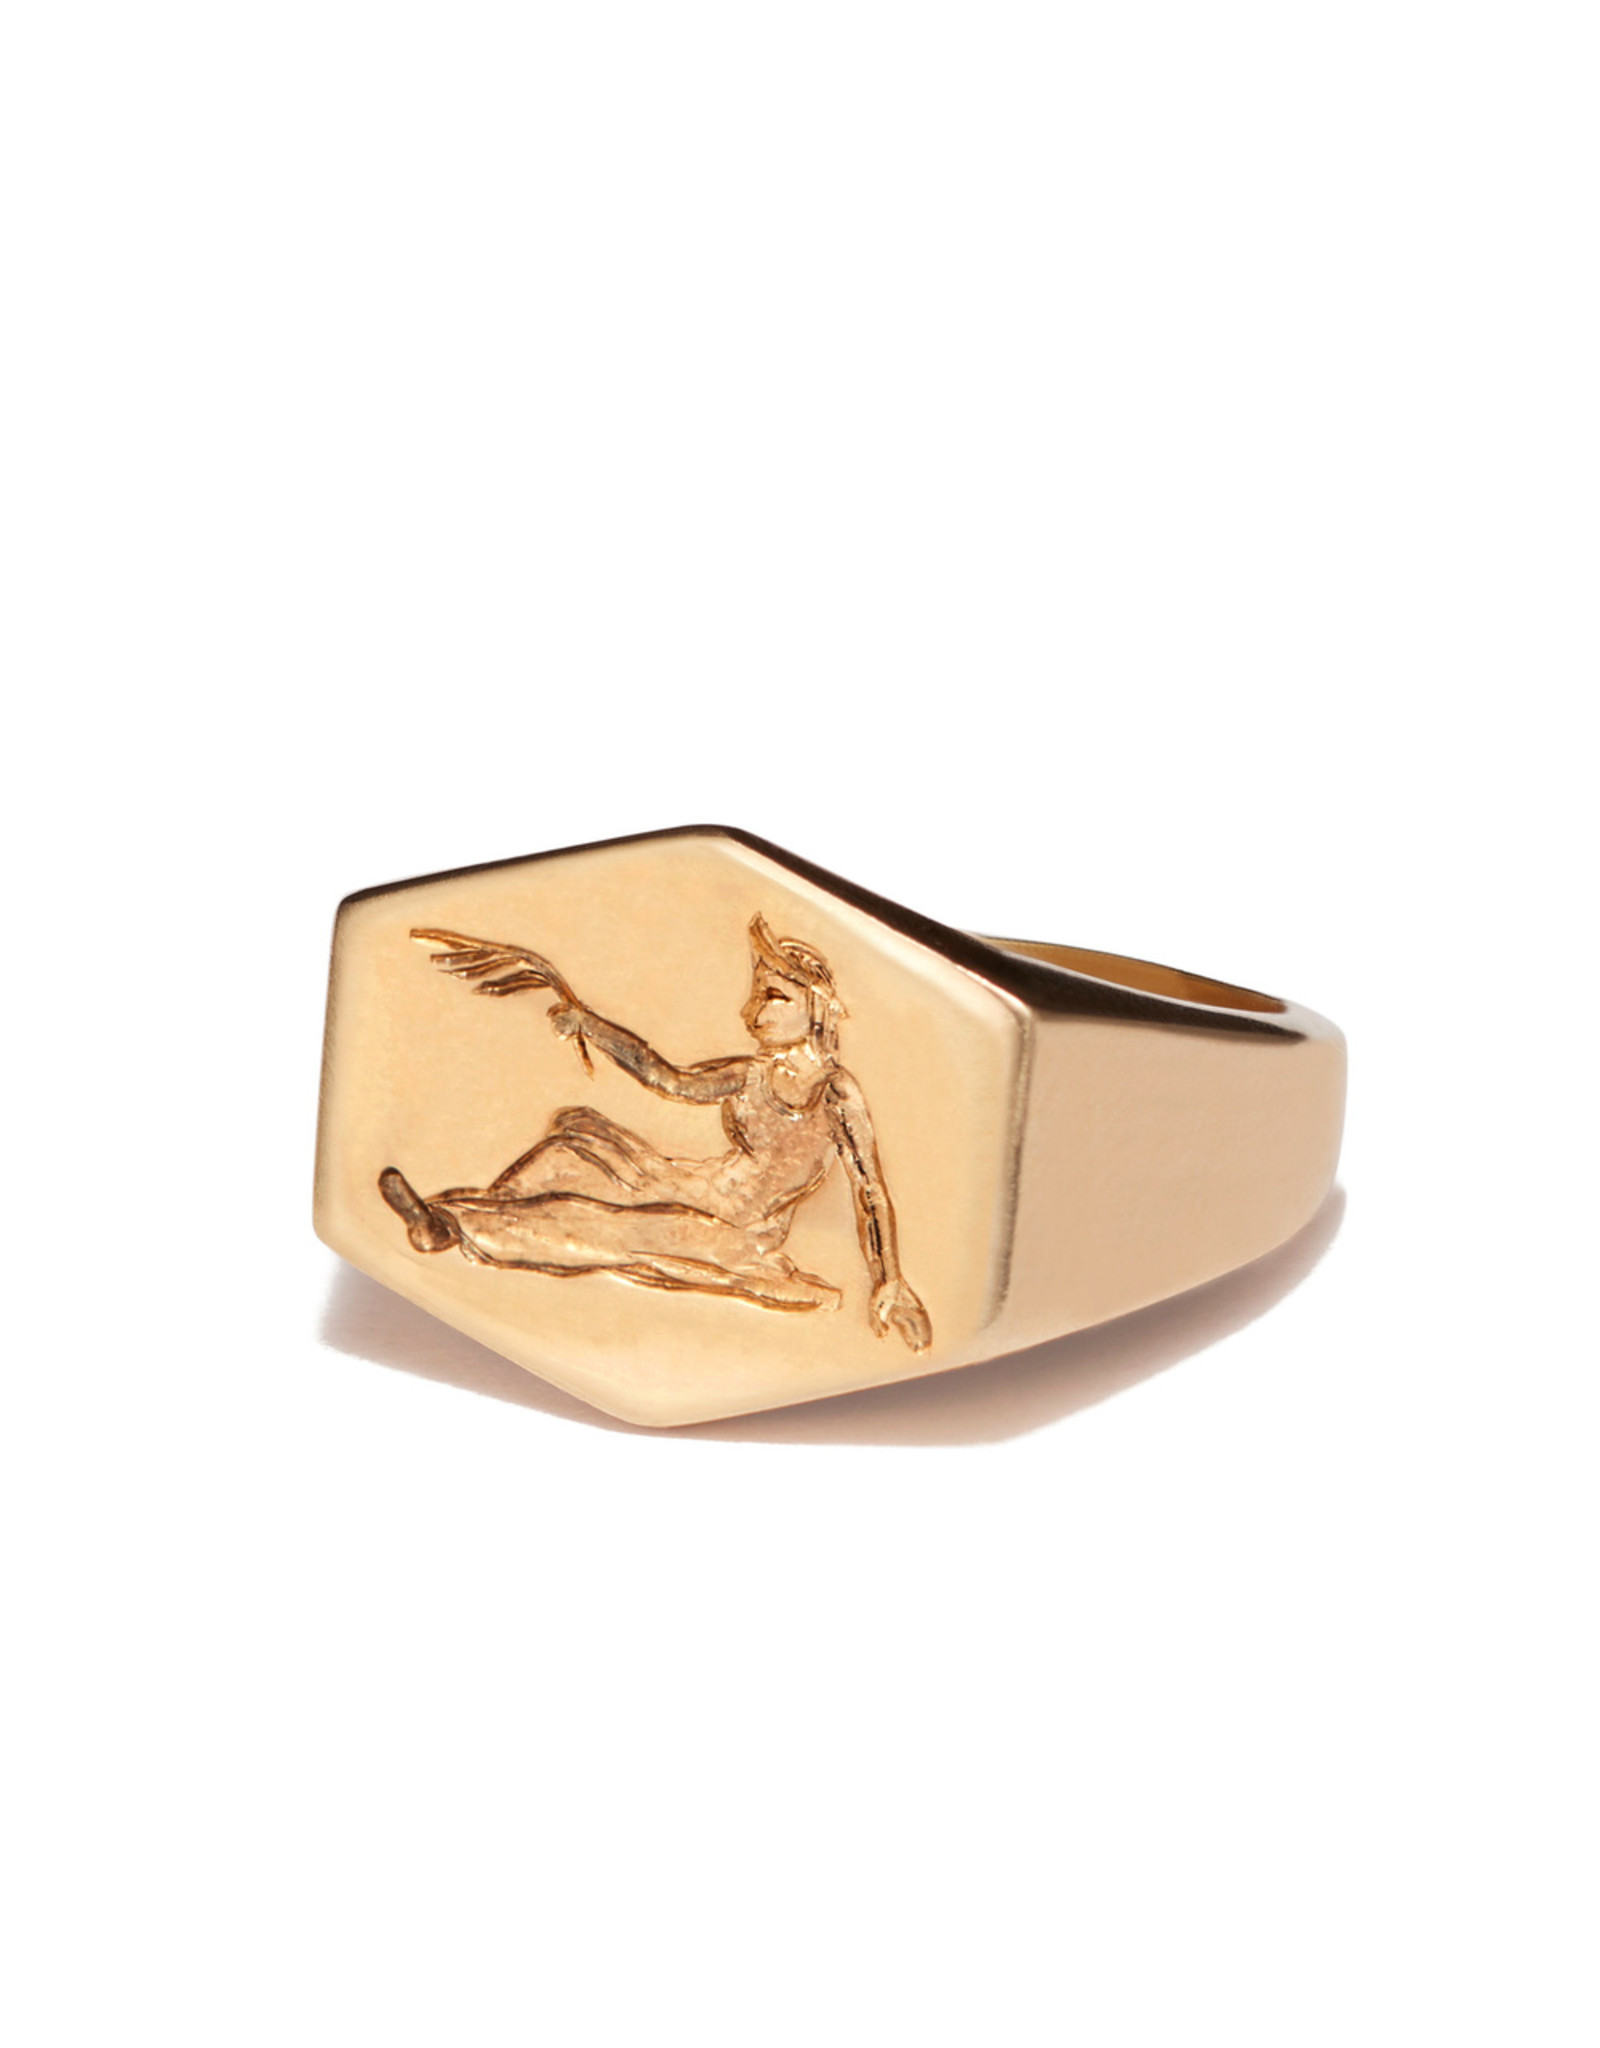 Kim Dunham Kim Dunham Zodiac Sign Gold Rings (Size: 6, Zodiac Sign: Virgo, Color: Yellow Gold)